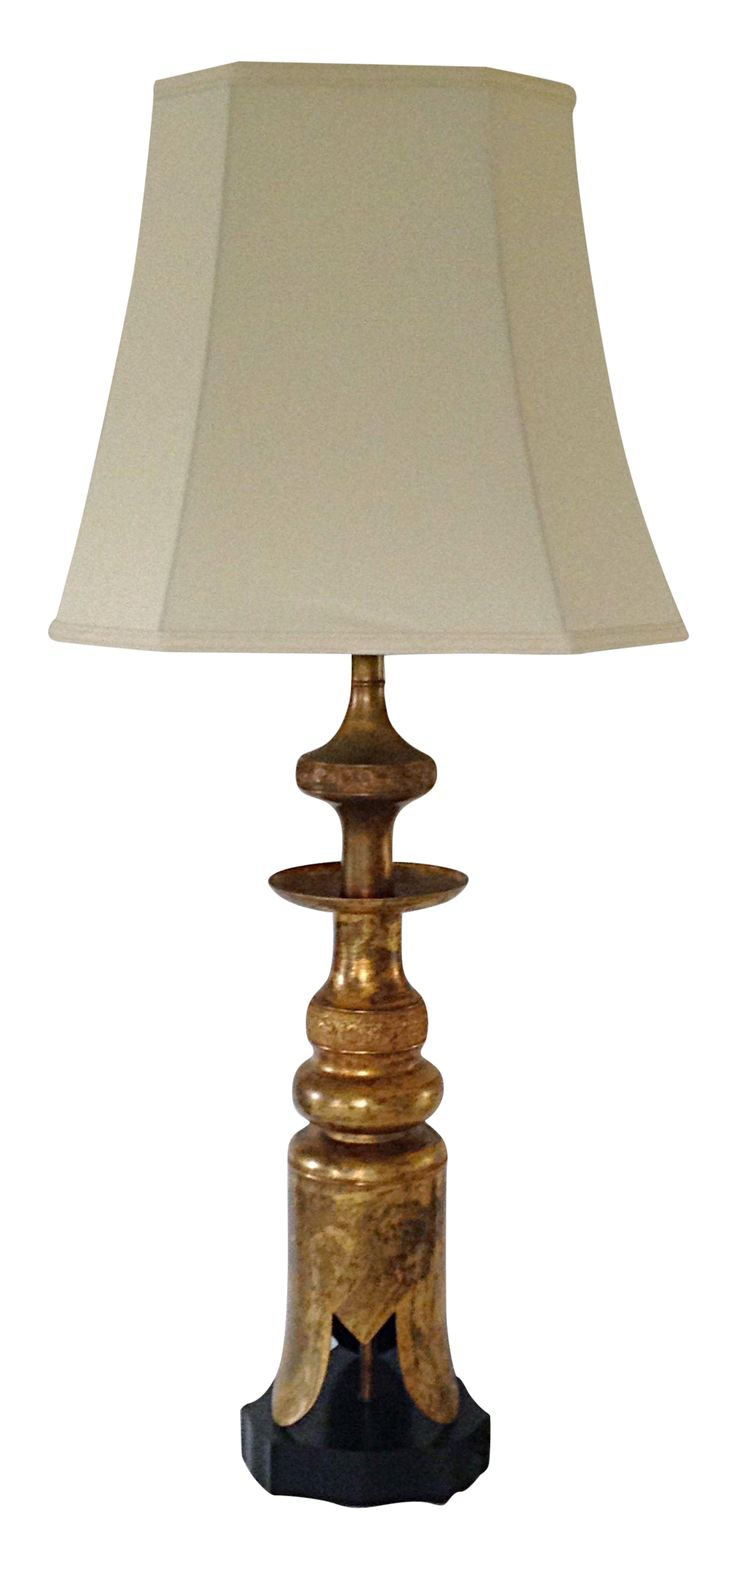 Types of asian table lamps for different locations warisan lighting - Table lamp types ...